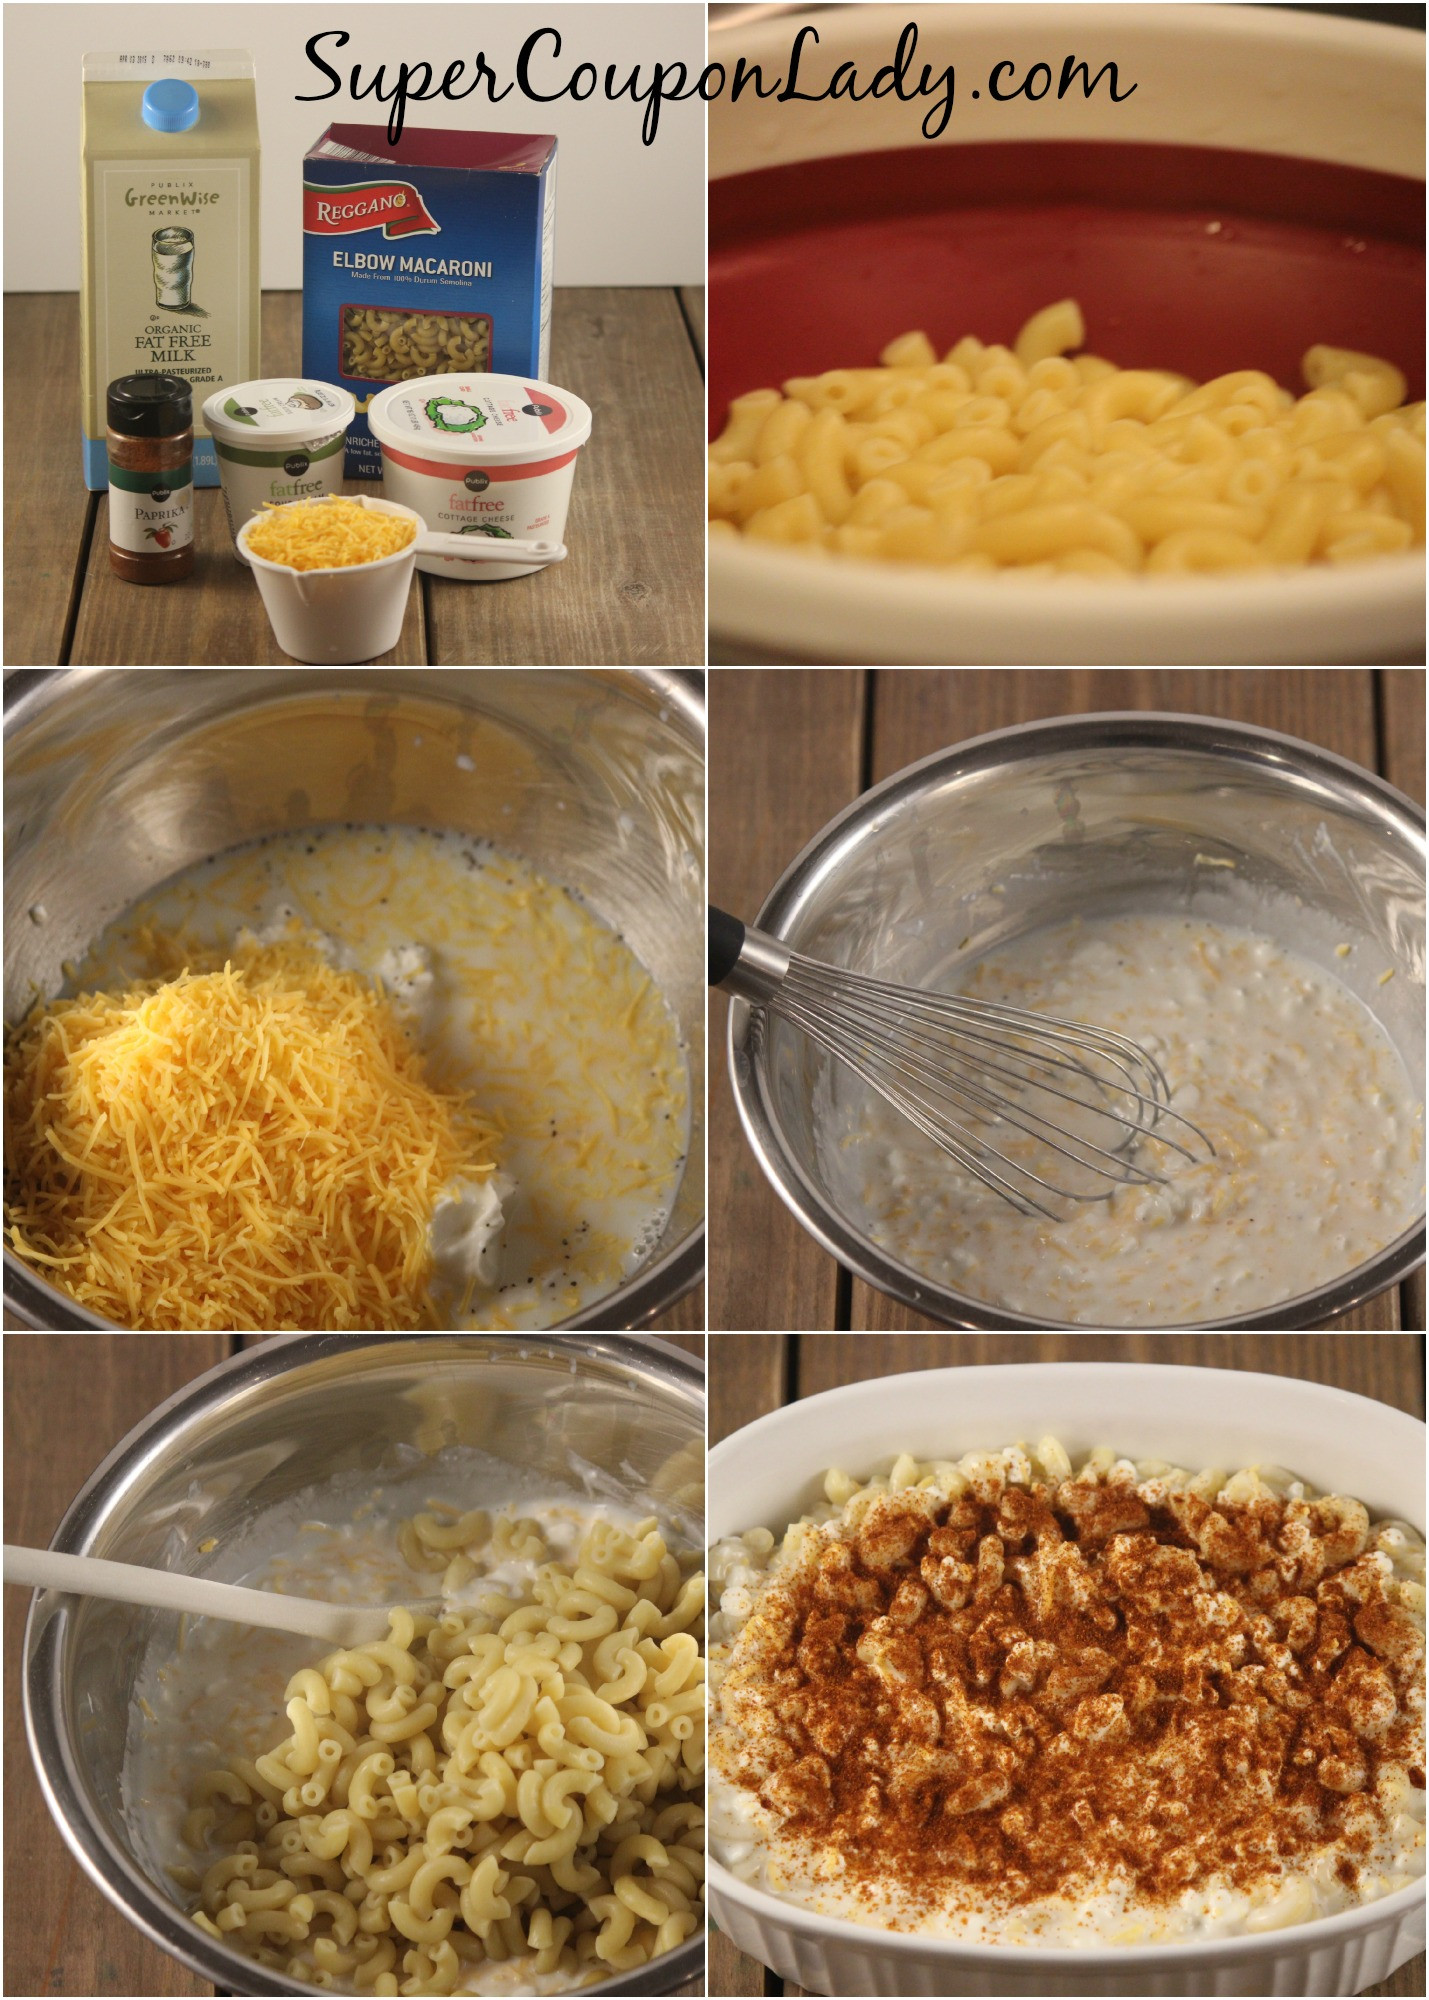 Low Fat Mac And Cheese Recipes  Low Fat Macaroni and Cheese Recipe Super Coupon Lady